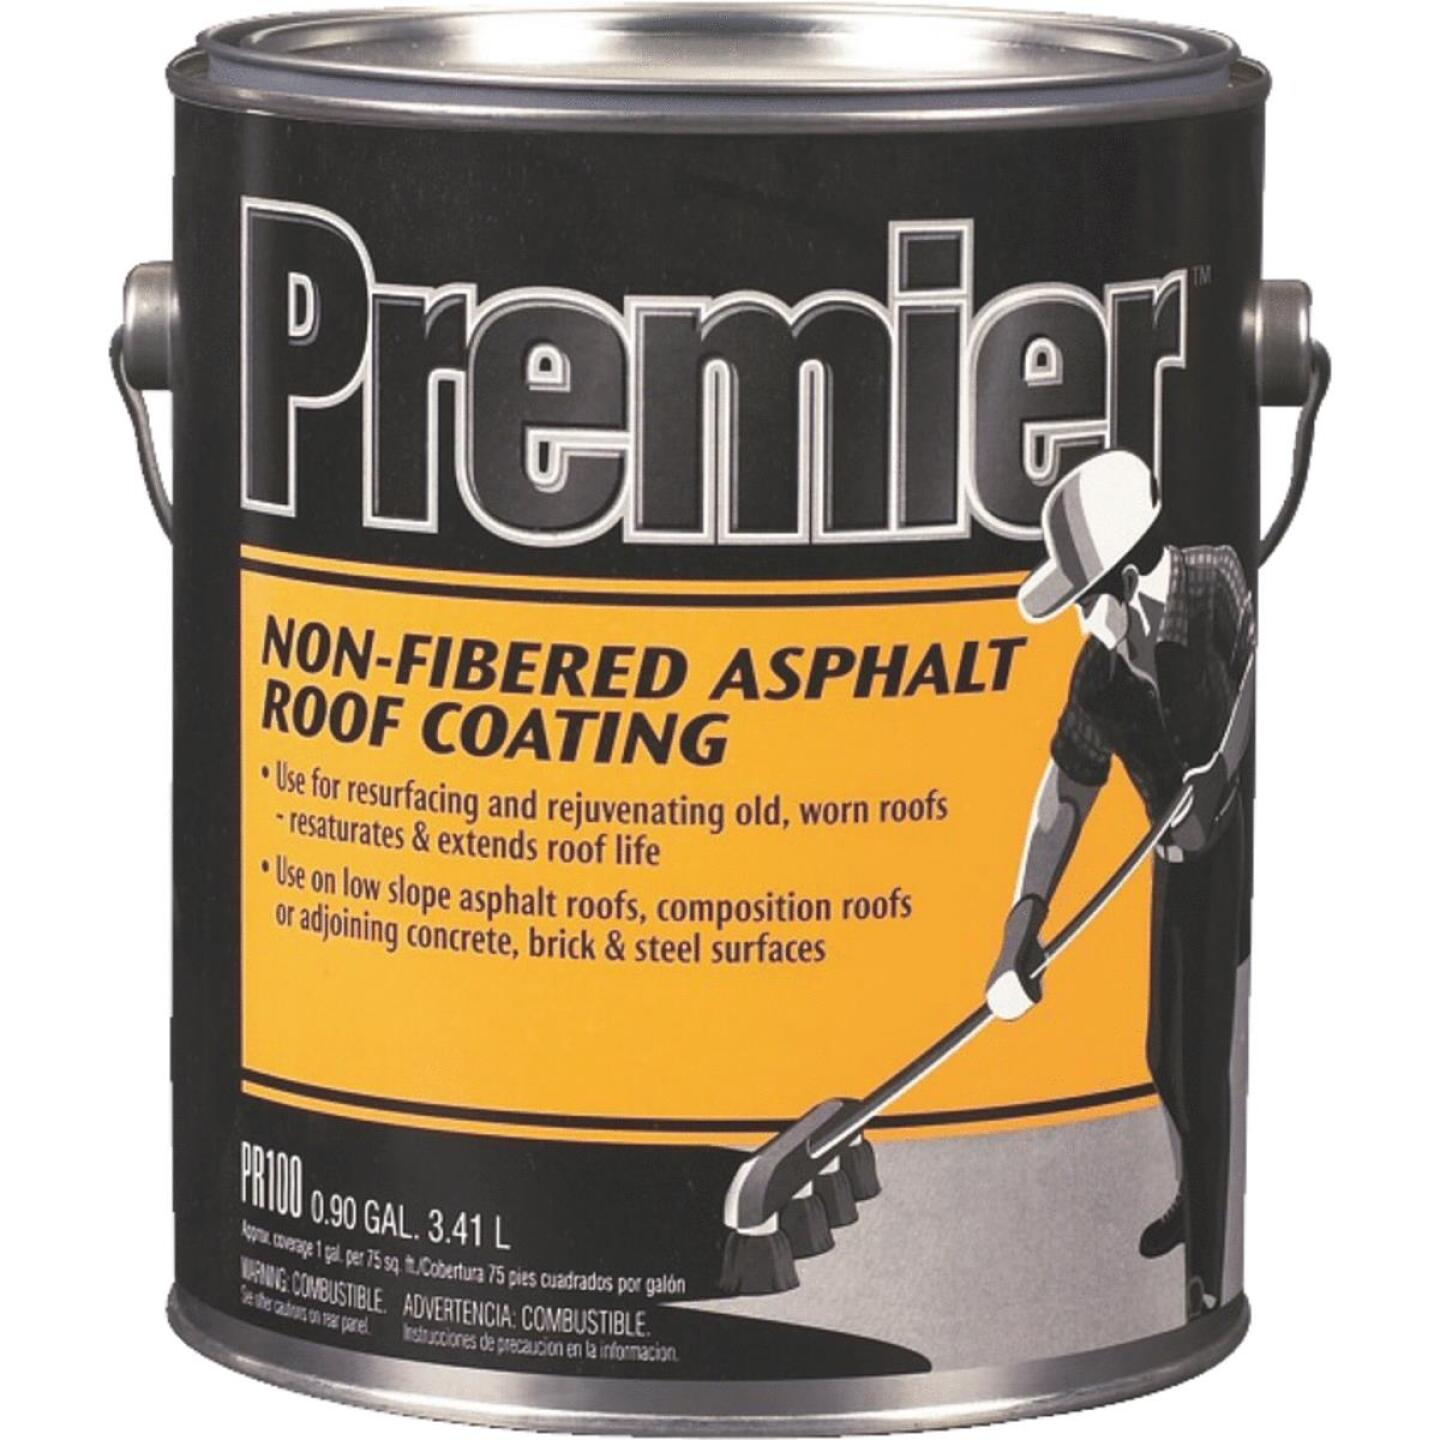 Premier 1 Gal. Non-Fibered Asphalt Roof Coating Image 1